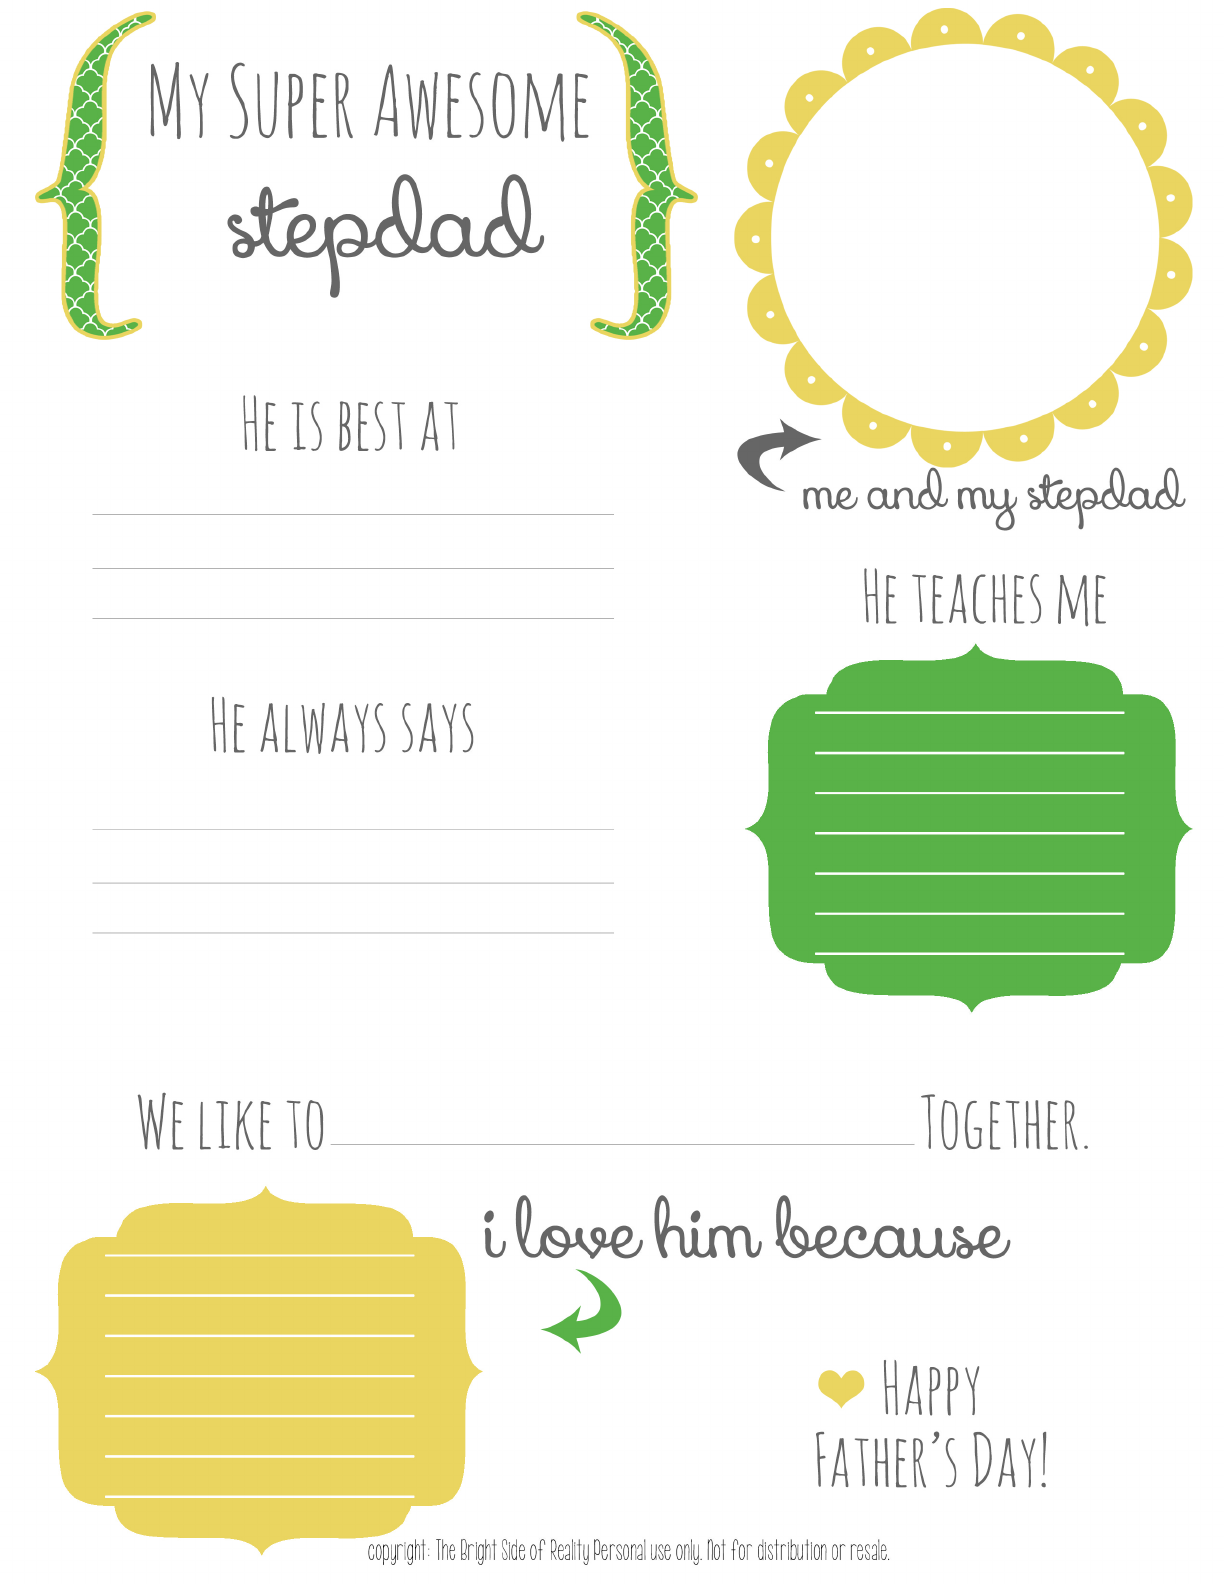 Stepdad Fathers Day Free Printable For Kids